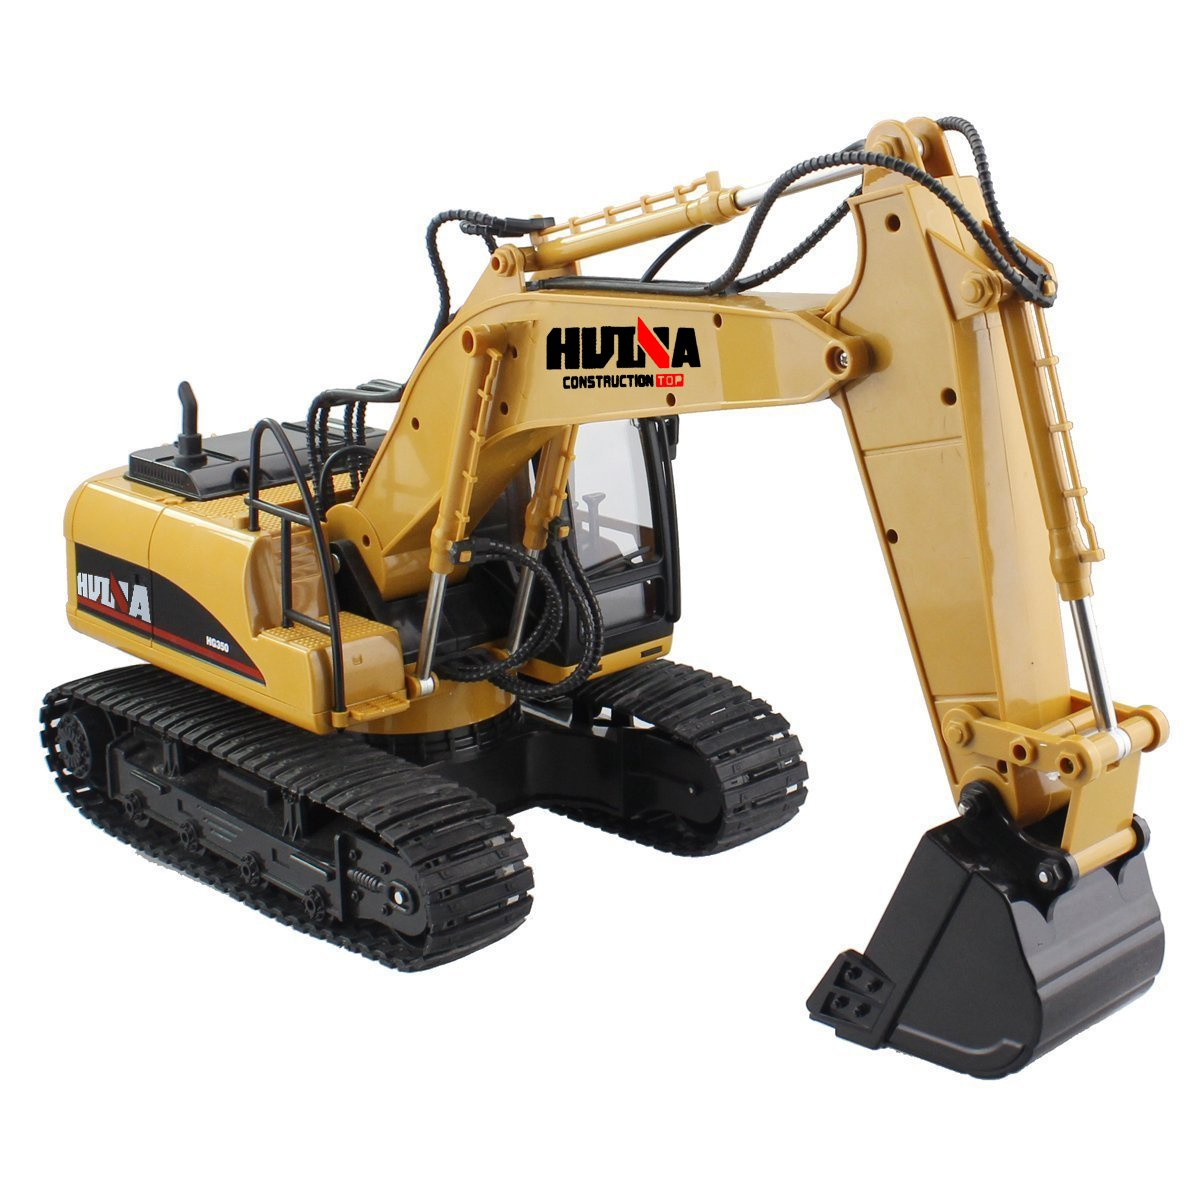 RC Truck Remote Control Excavator Crawler Tractor 15 Channel 2.4G Construction Vehicle Digger Electronics Hobby Toys with Simulation Sound and Flashing Lights by fisca (Image #2)